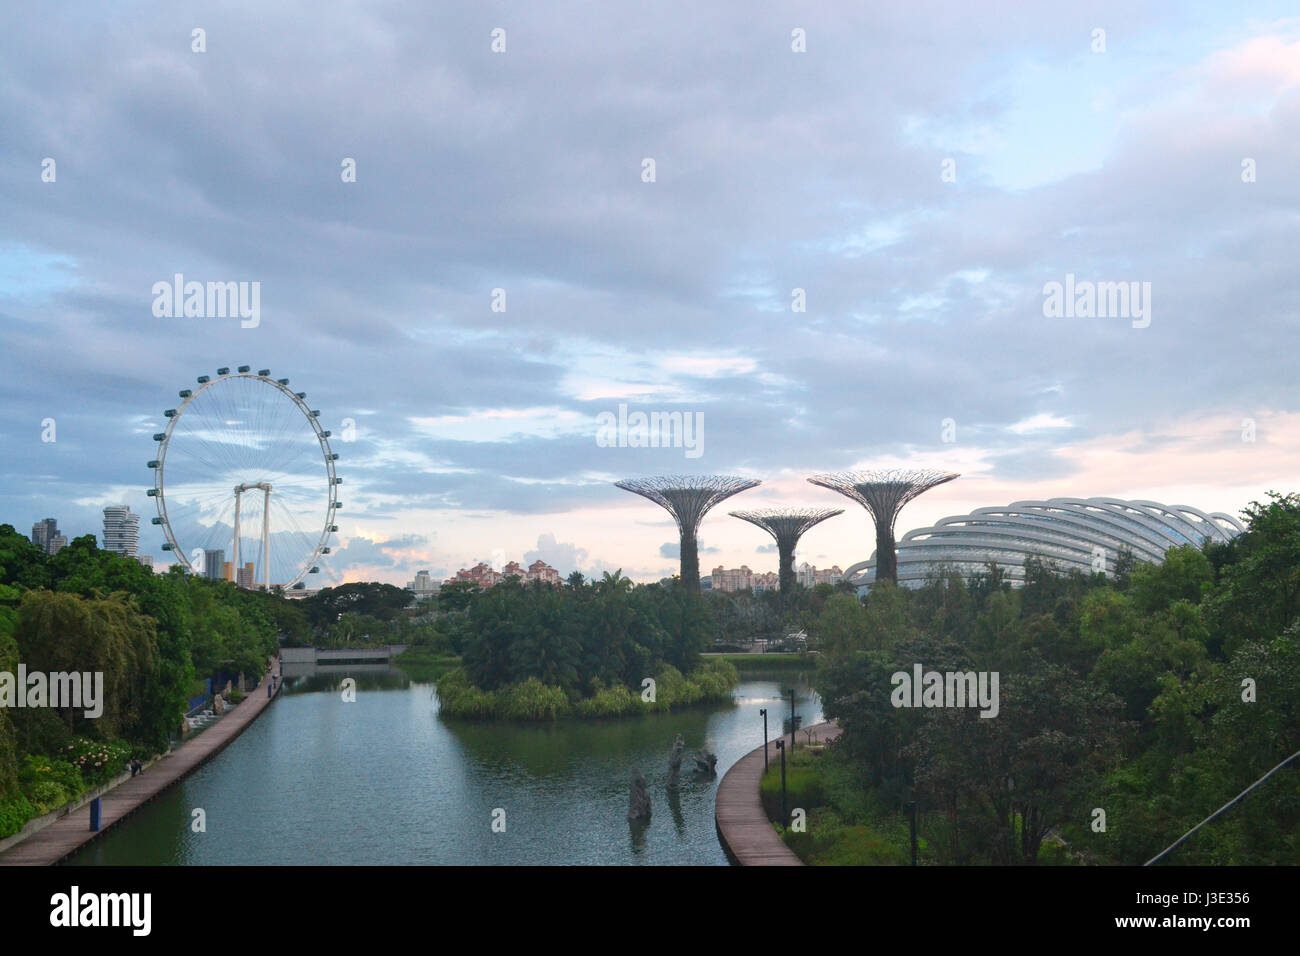 Panoramic day view of Gardens by the bay at sunset, in Singapore. - Stock Image